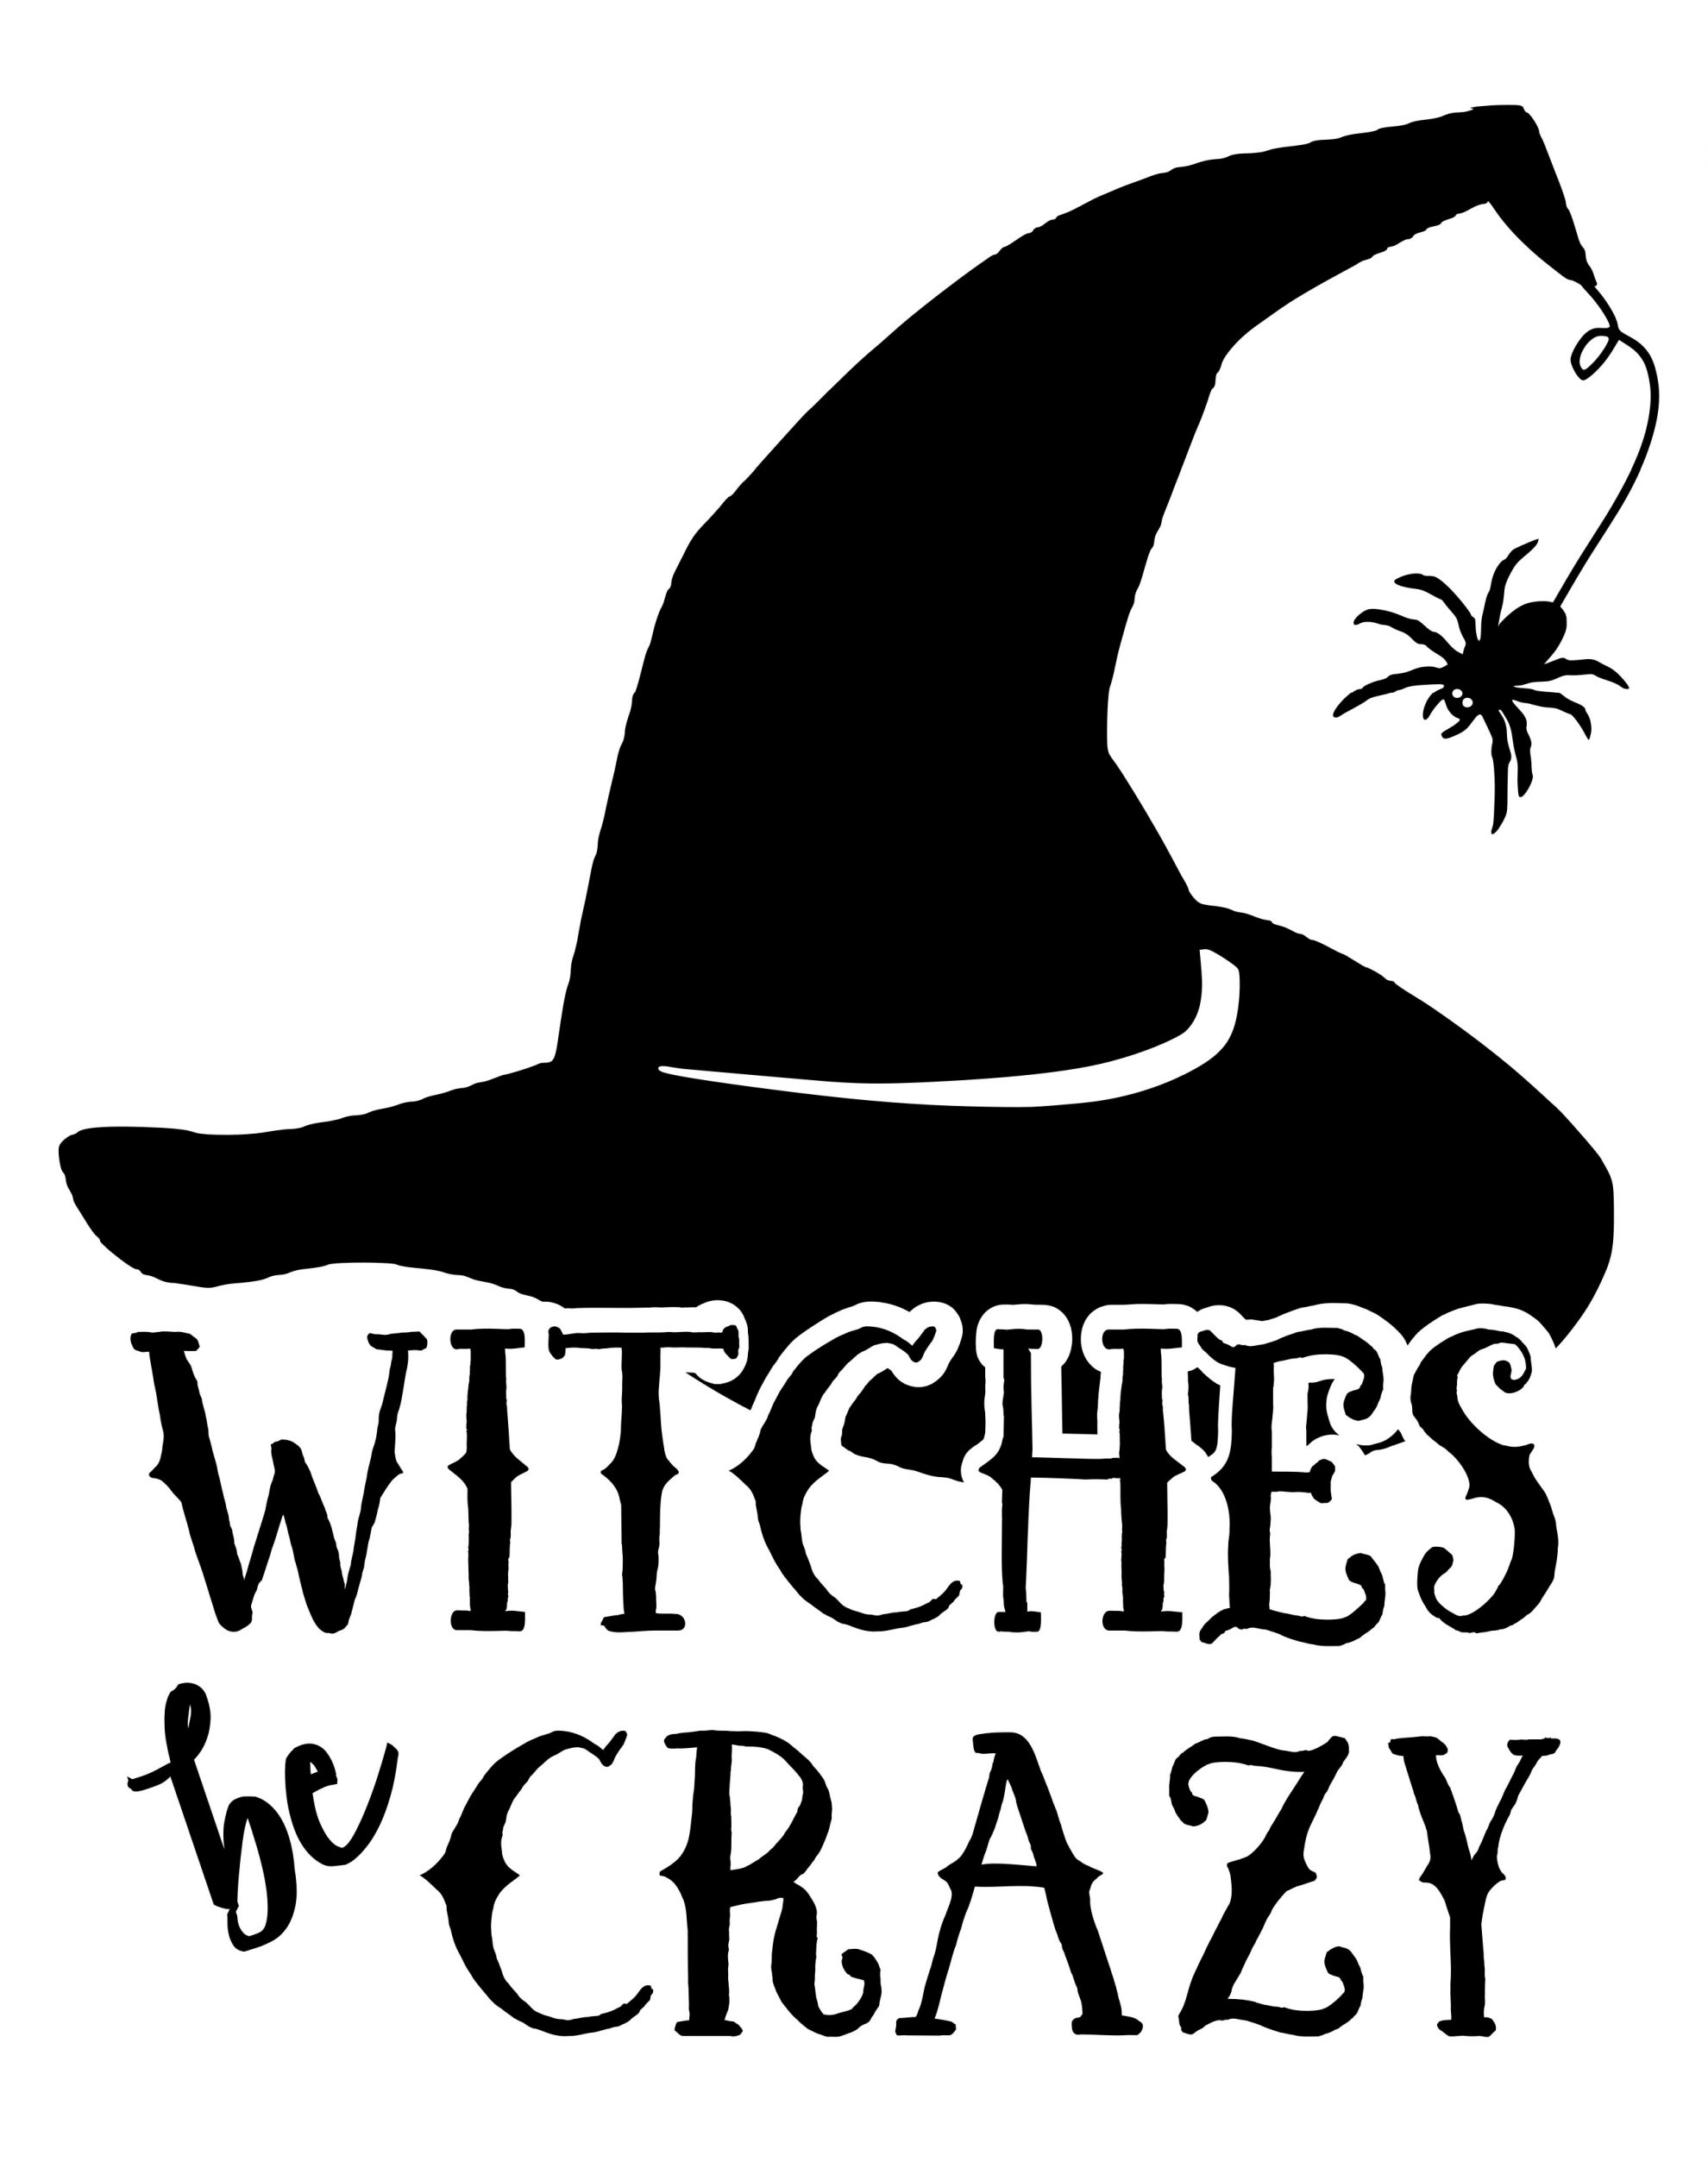 74d3249fa Witches be Crazy Halloween Tee Shirt - Dream a Little Bigger